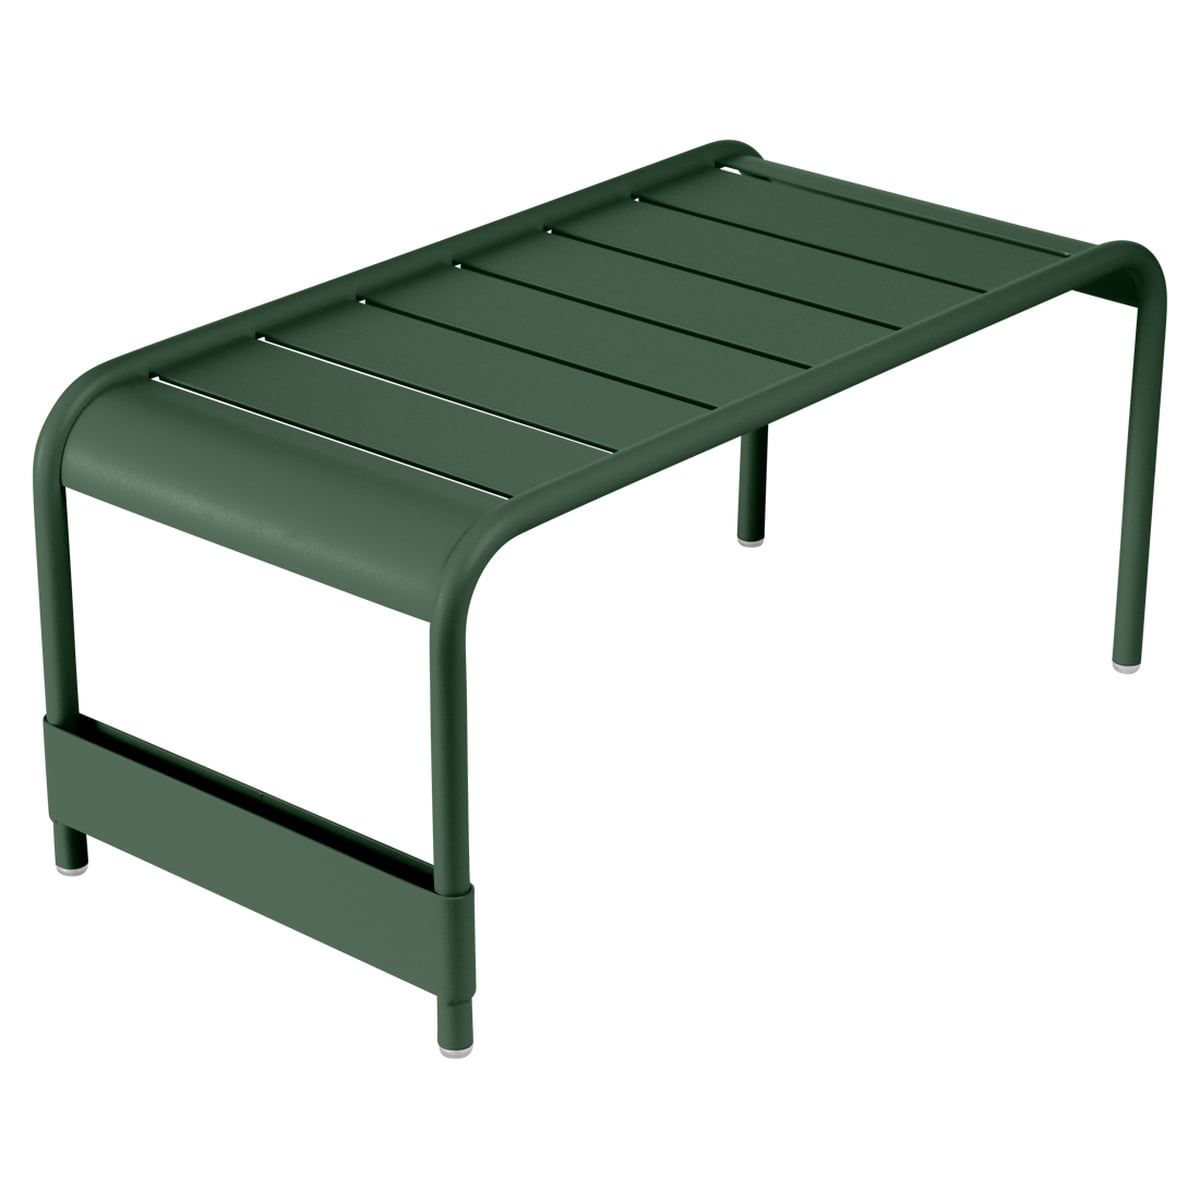 luxembourg low table garden bench by fermob. Black Bedroom Furniture Sets. Home Design Ideas